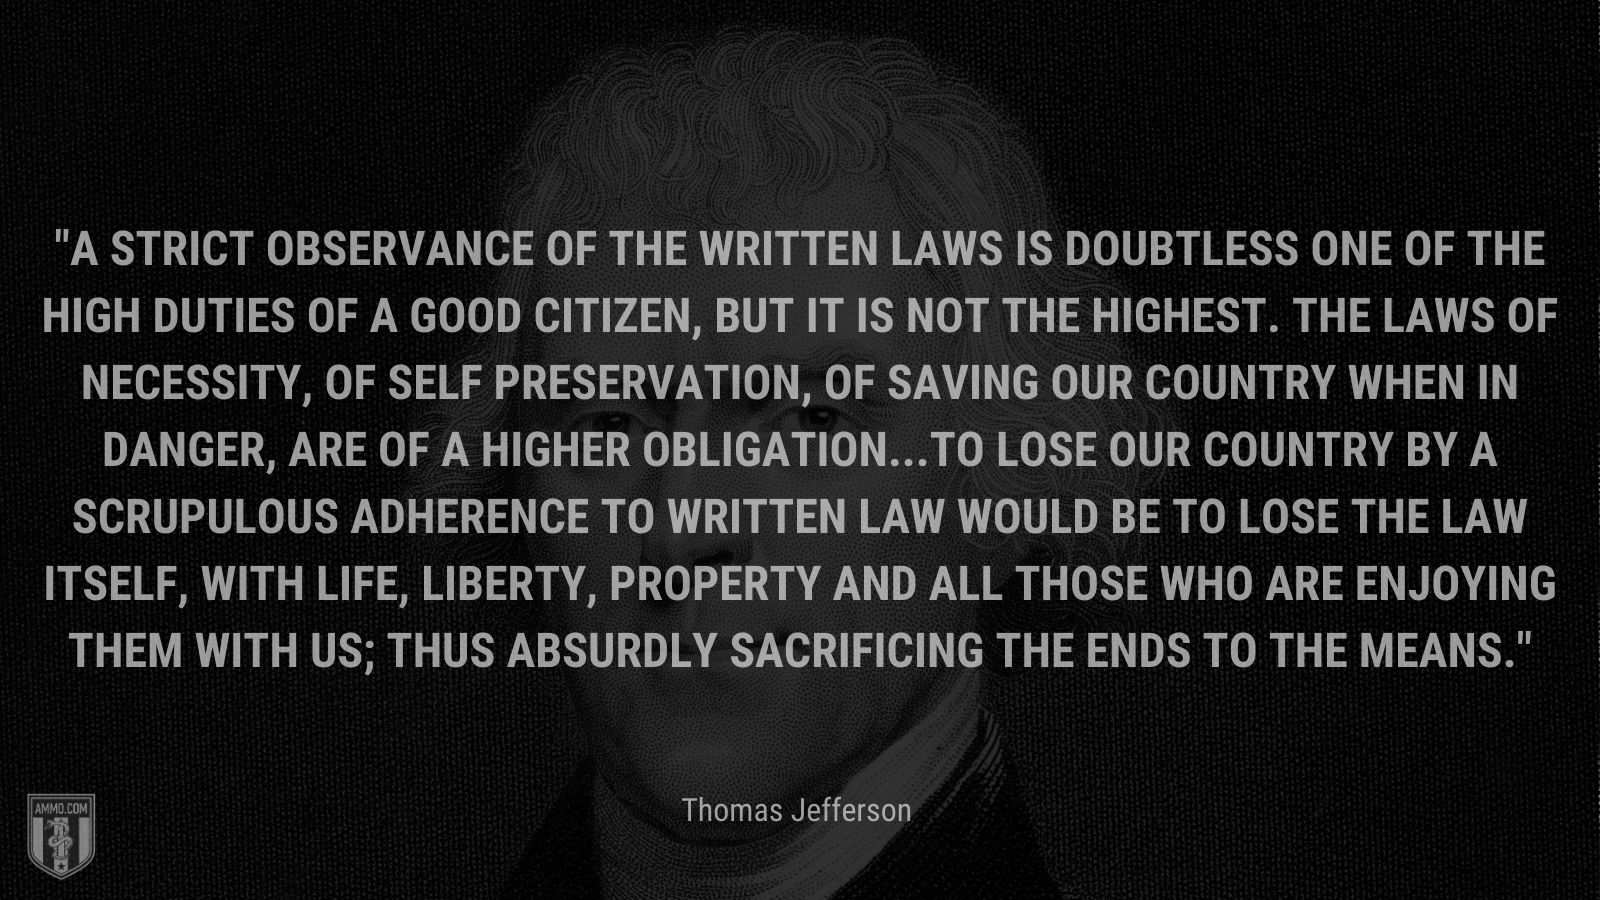 """""""A strict observance of the written laws is doubtless one of the high duties of a good citizen, but it is not the highest. The laws of necessity, of self preservation, of saving our country when in danger, are of a higher obligation...To lose our country by a scrupulous adherence to written law would be to lose the law itself, with life, liberty, property and all those who are enjoying them with us; thus absurdly sacrificing the ends to the means."""" - Thomas Jefferson"""